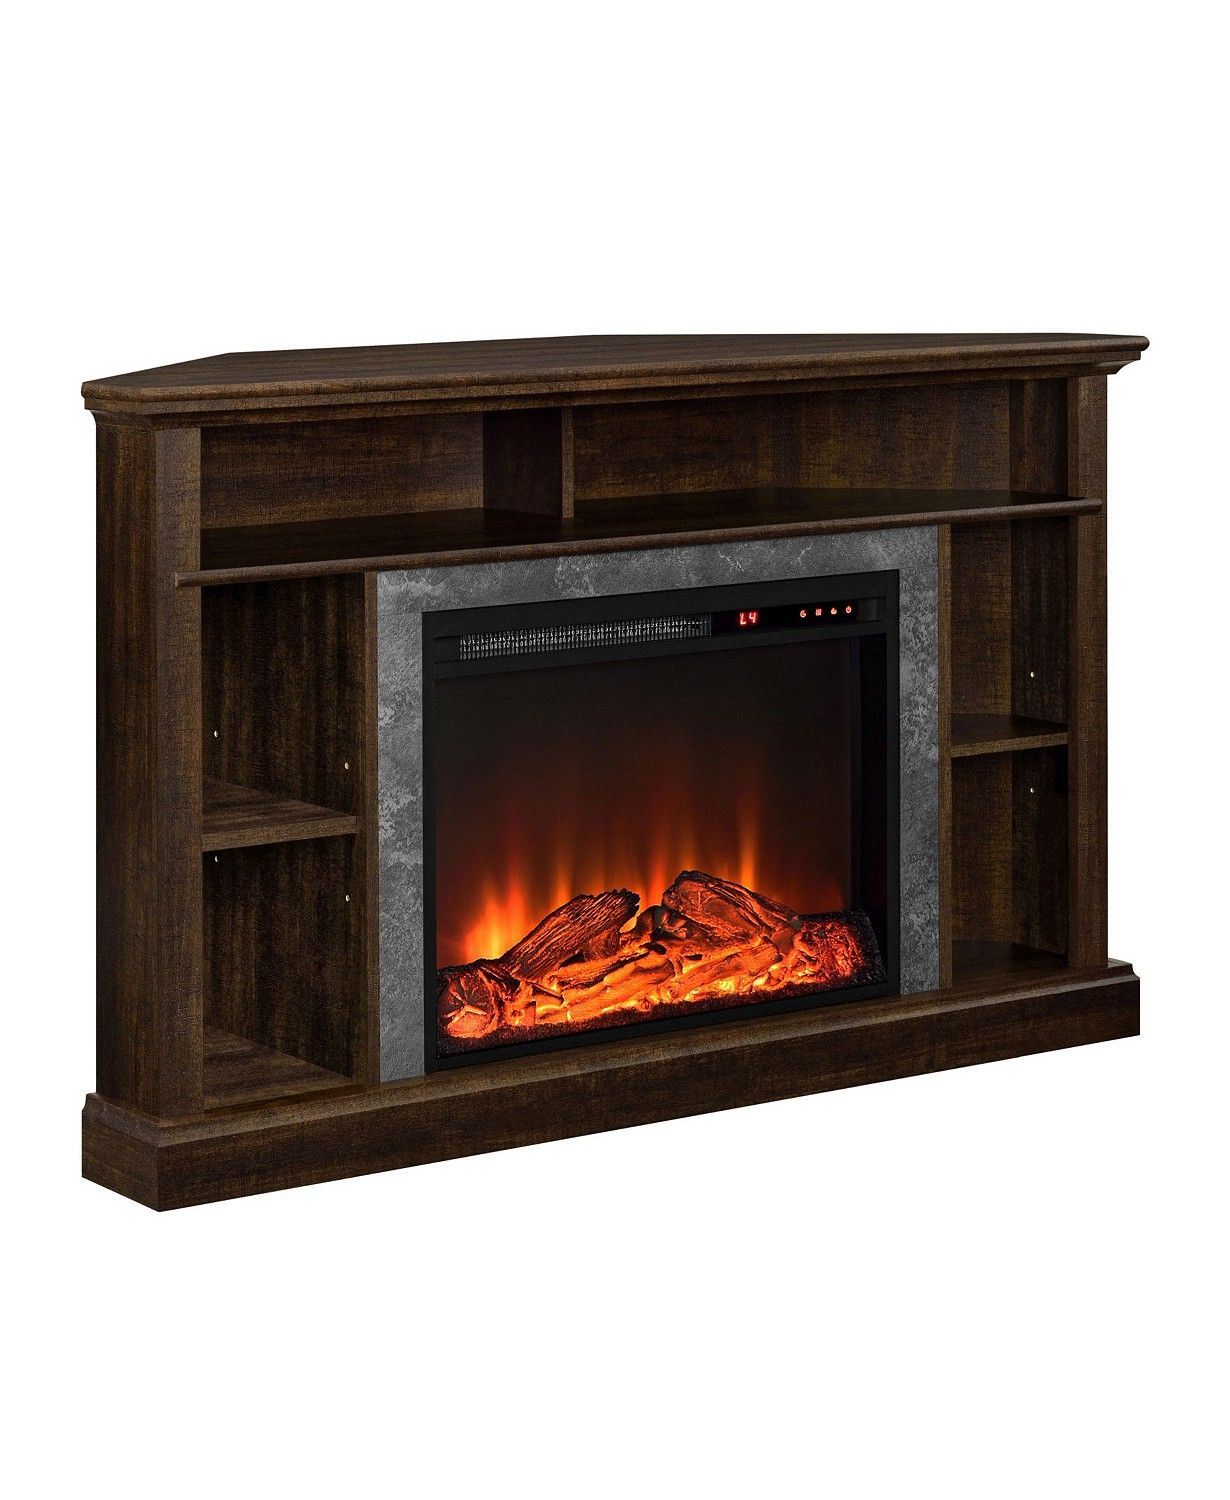 electric fireplace nebraska furniture mart on ameriwood home rio electric corner fireplace for tvs up to 50 inches reviews furniture macy s fireplace tv stand electric fireplace tv stand corner fireplace pinterest